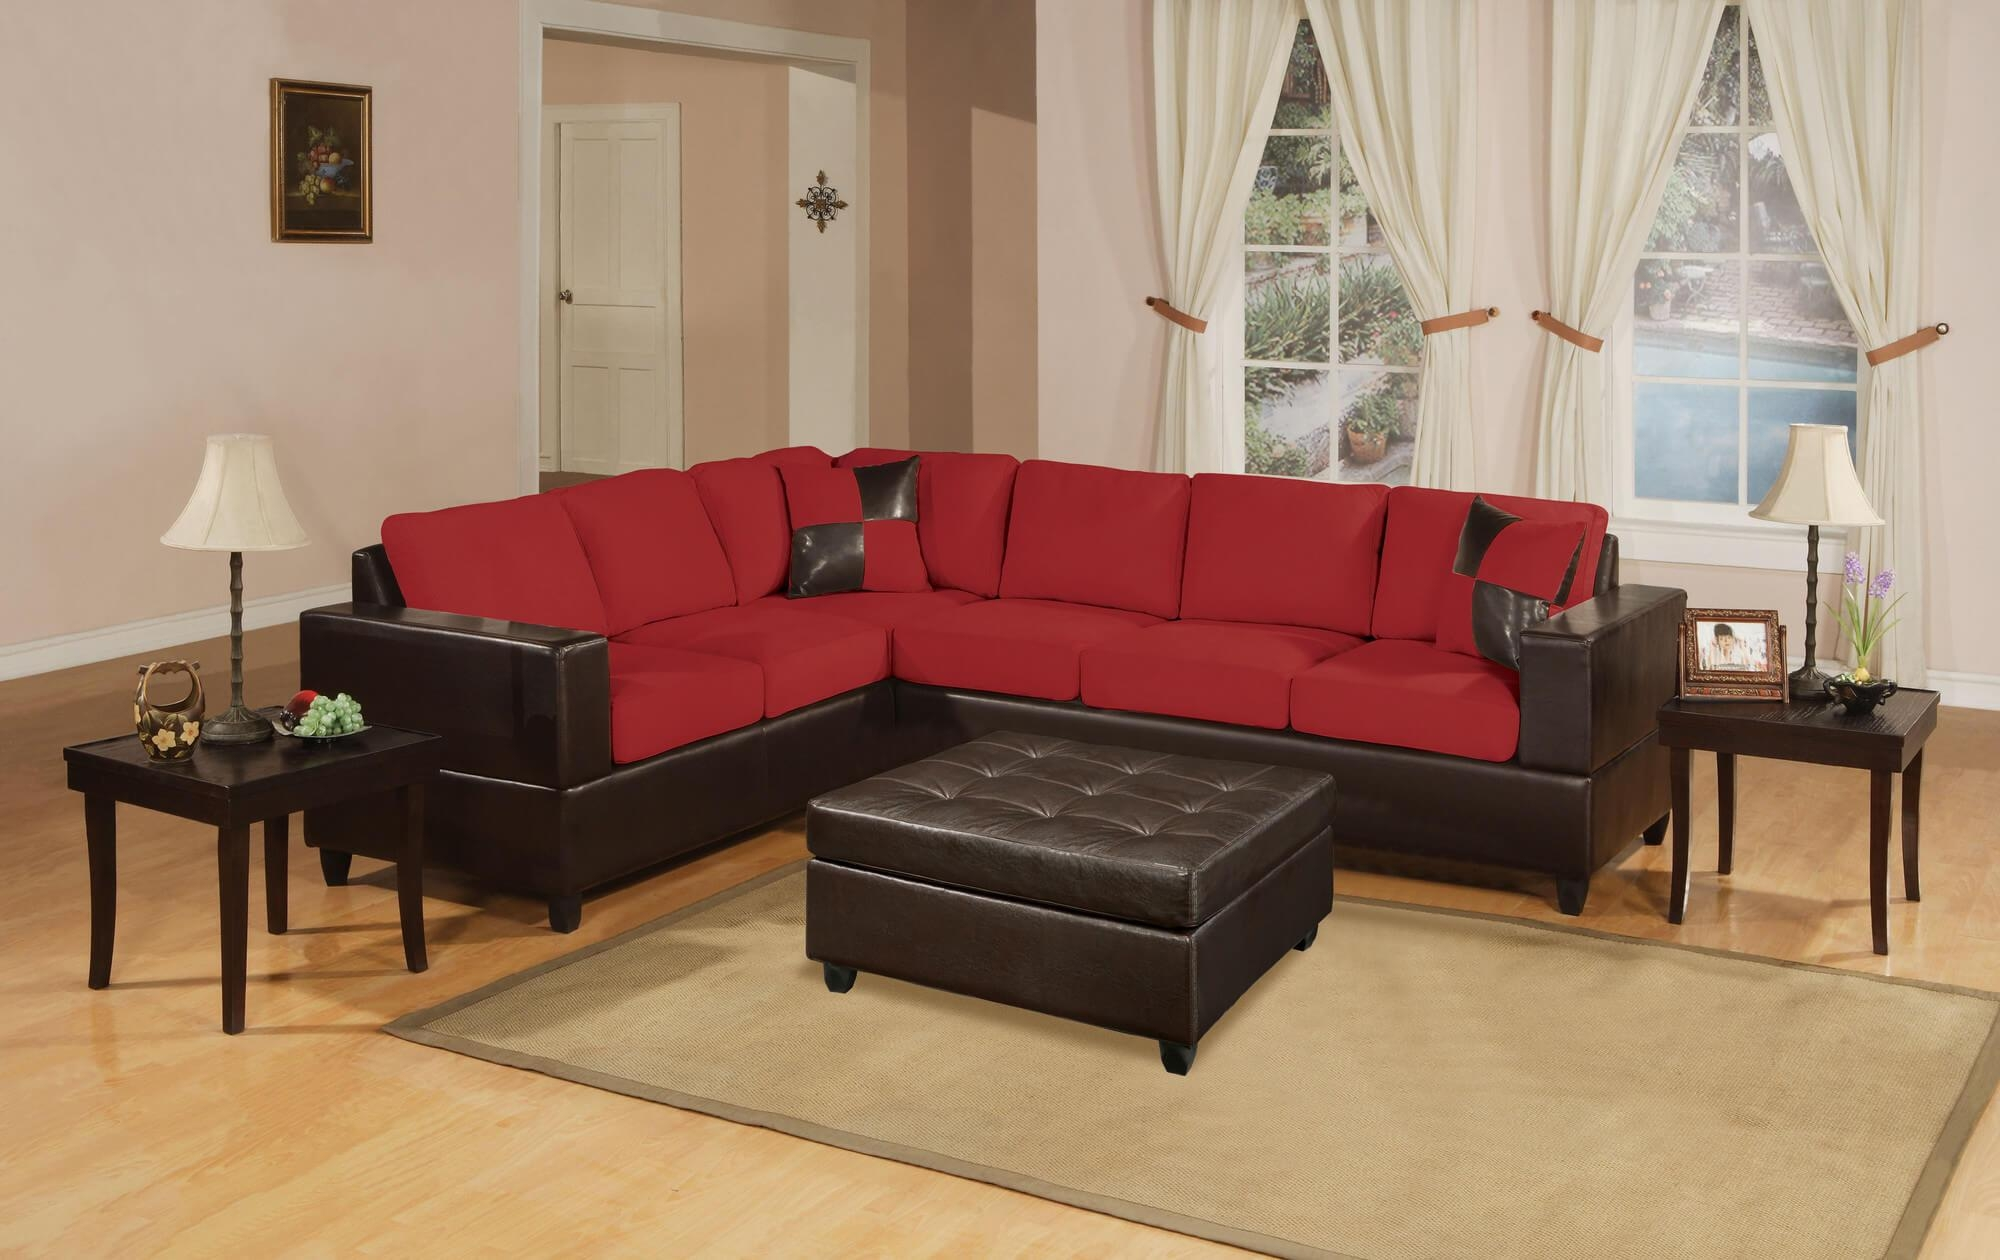 Red Sectional Sofas | Roselawnlutheran Regarding Red Black Sectional Sofa (Image 15 of 20)